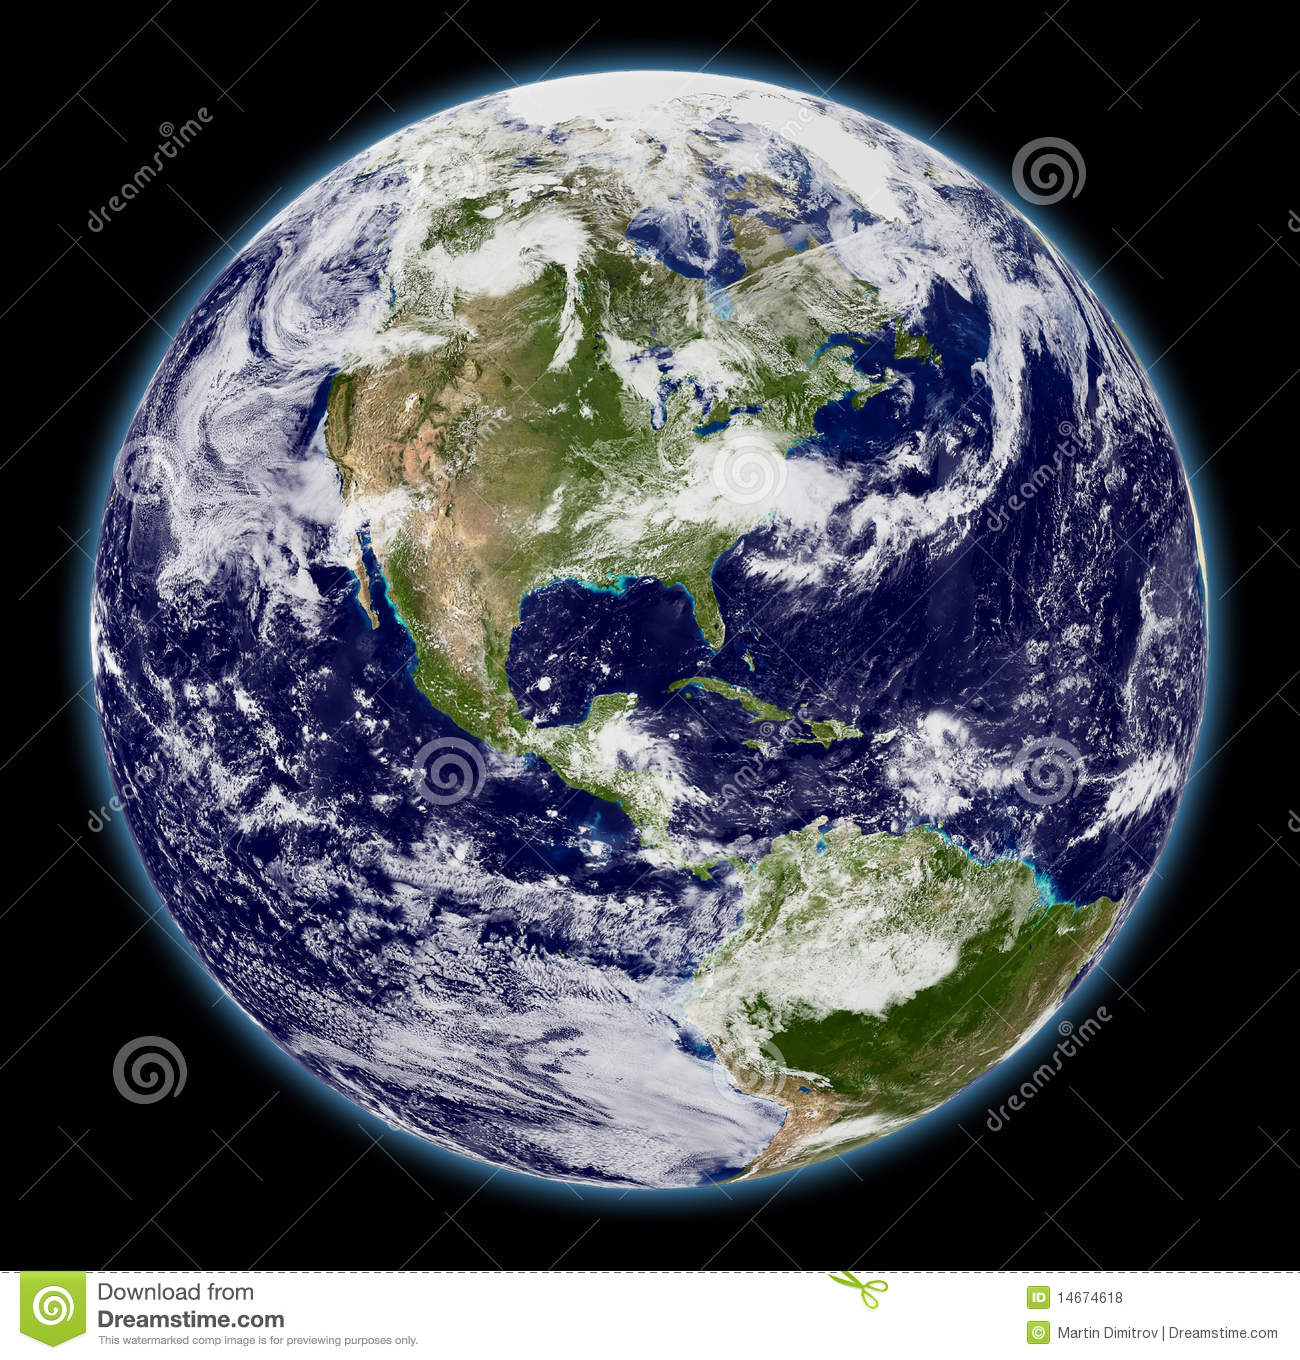 planet earth royalty free stock photos image 14674618 planet earth clipart planet earth clip art black white image